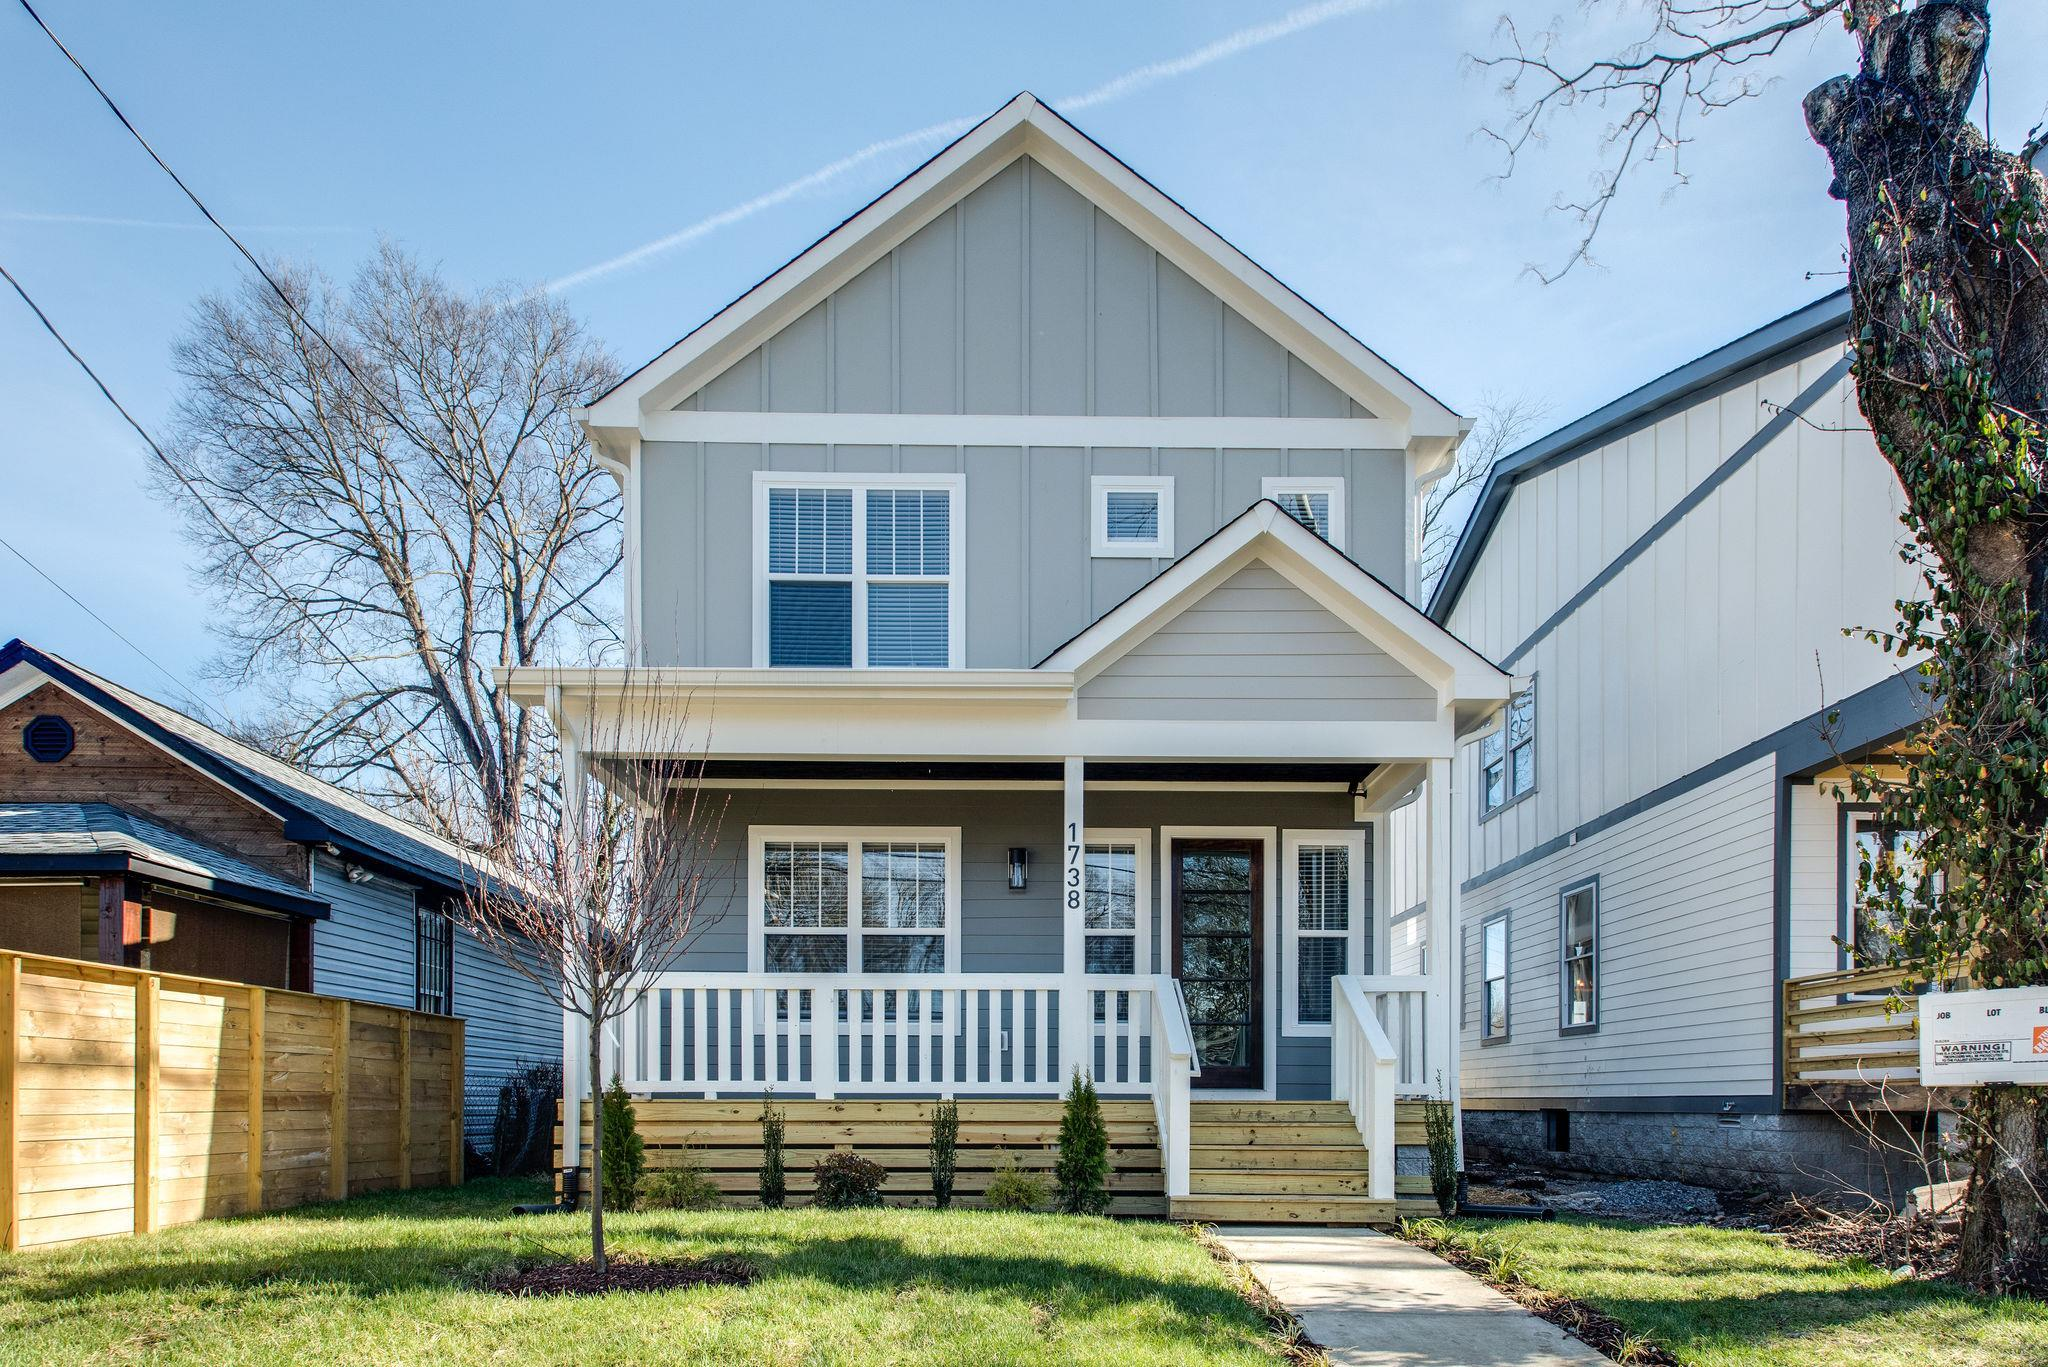 2100 15th Ave N A, Nashville, TN 37208 - Nashville, TN real estate listing